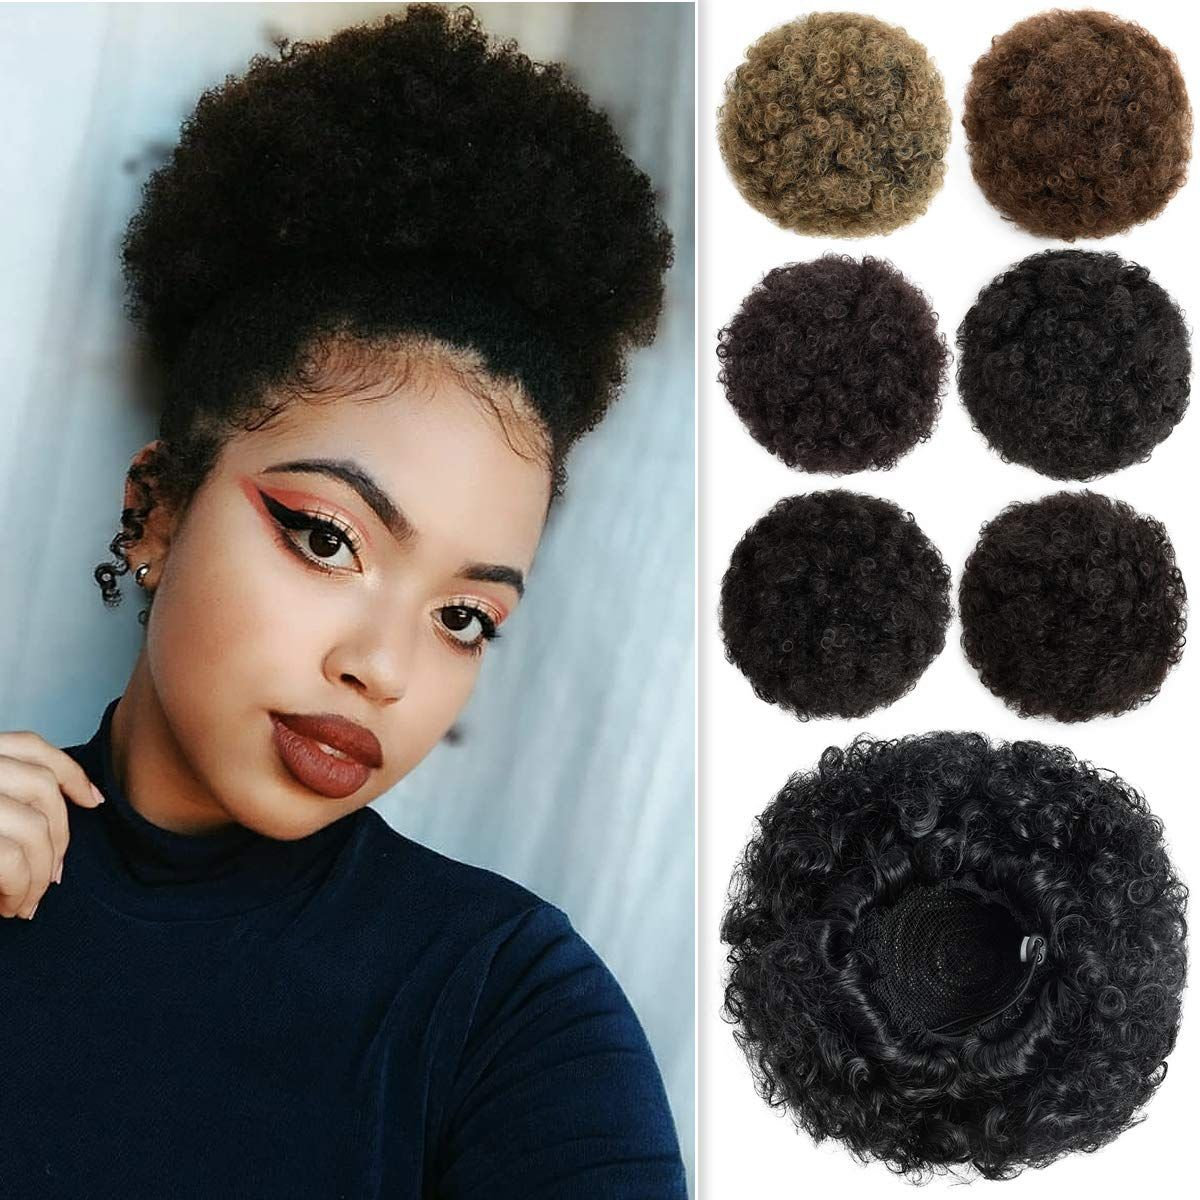 Afro Puff Drawstring Ponytail Bun Extensions Synthetic Updo Hair Pieces For Black Women In 2020 Drawstring Ponytail Hair Pieces Afro Puff